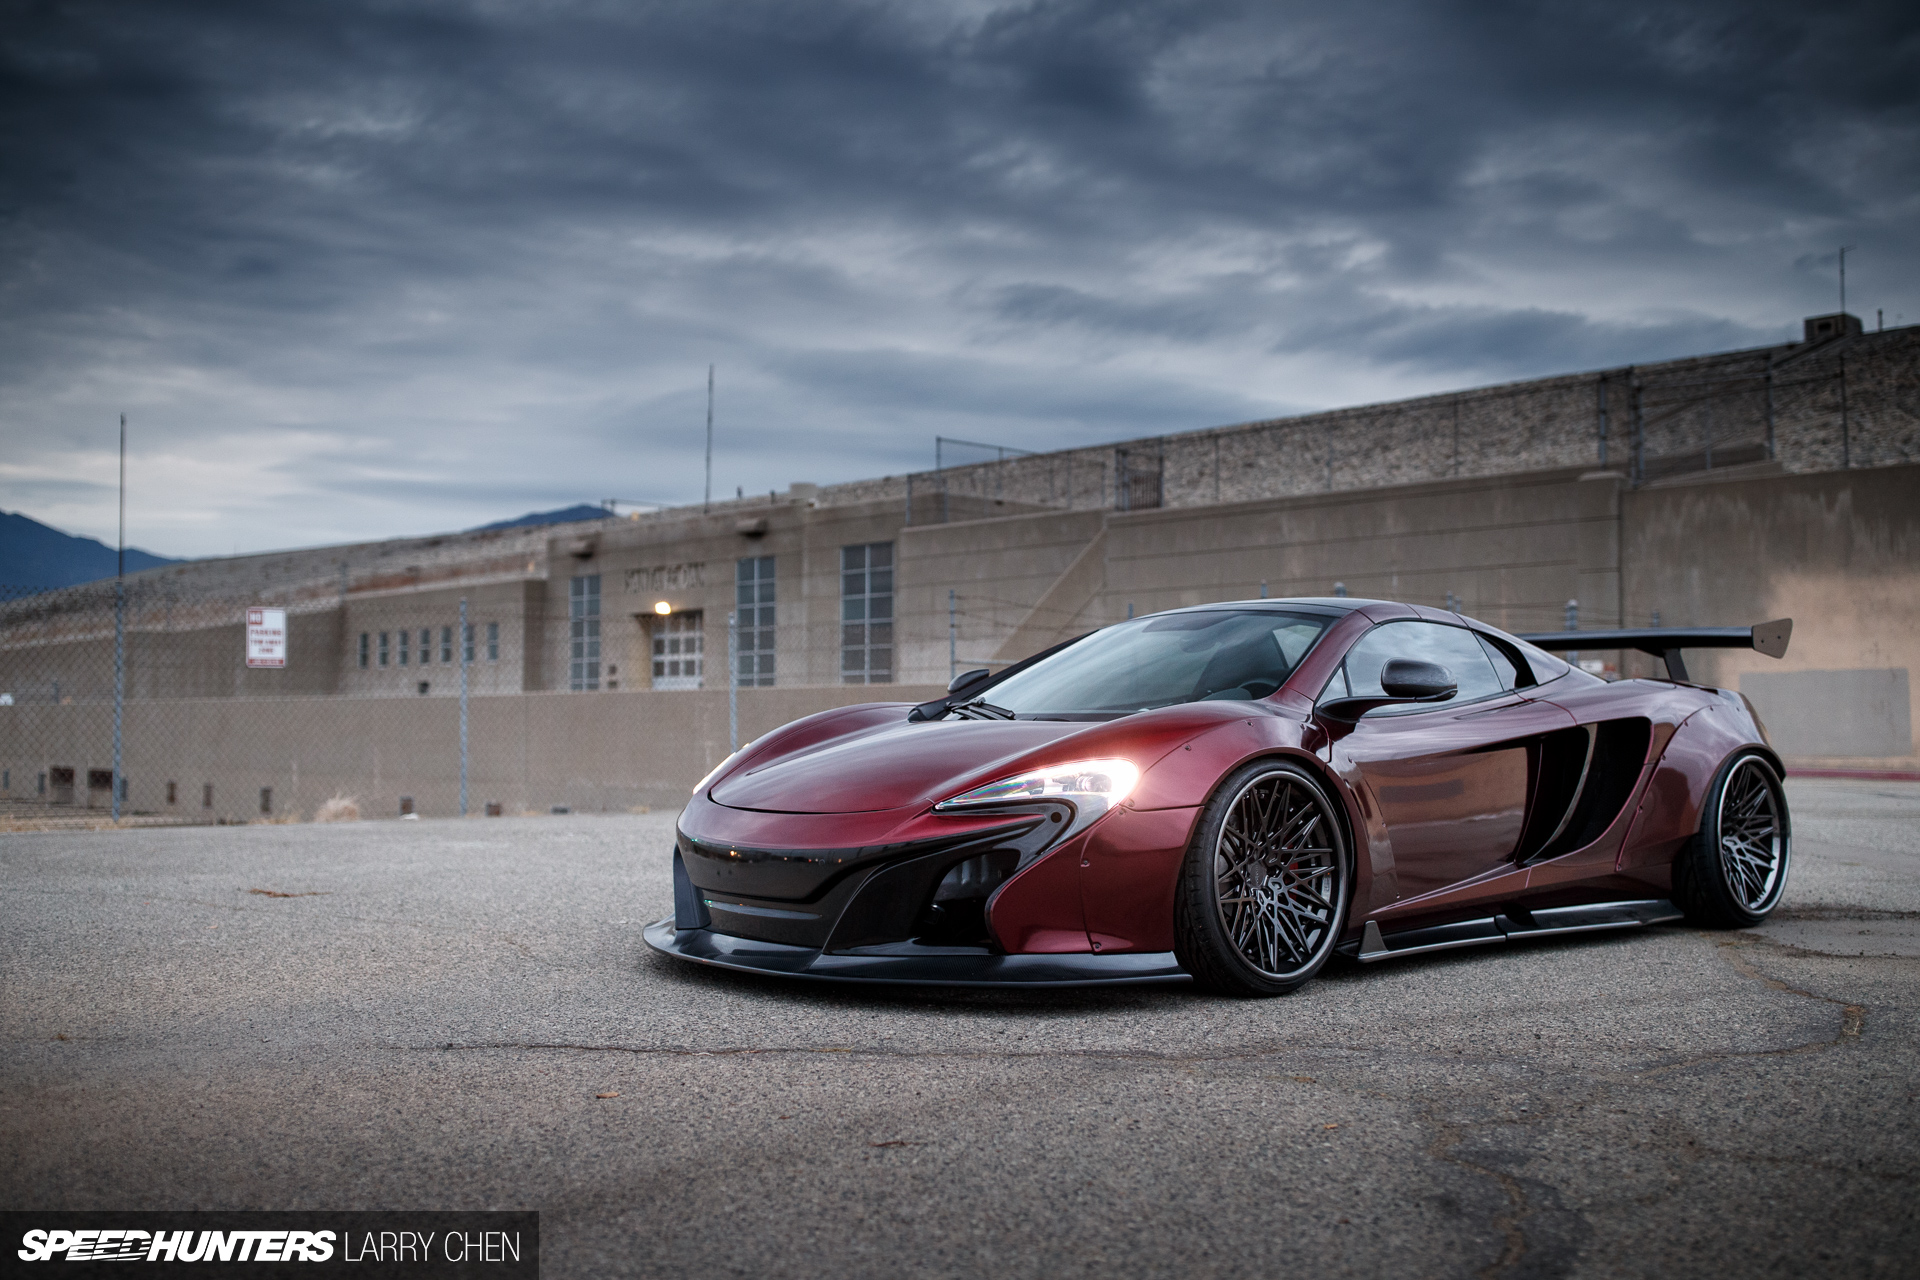 Larry_Chen_Speedhunters_liberty_walk_mclaren_Mp412c-4 LB-WORKS Mclaren 650S / MP4-12c